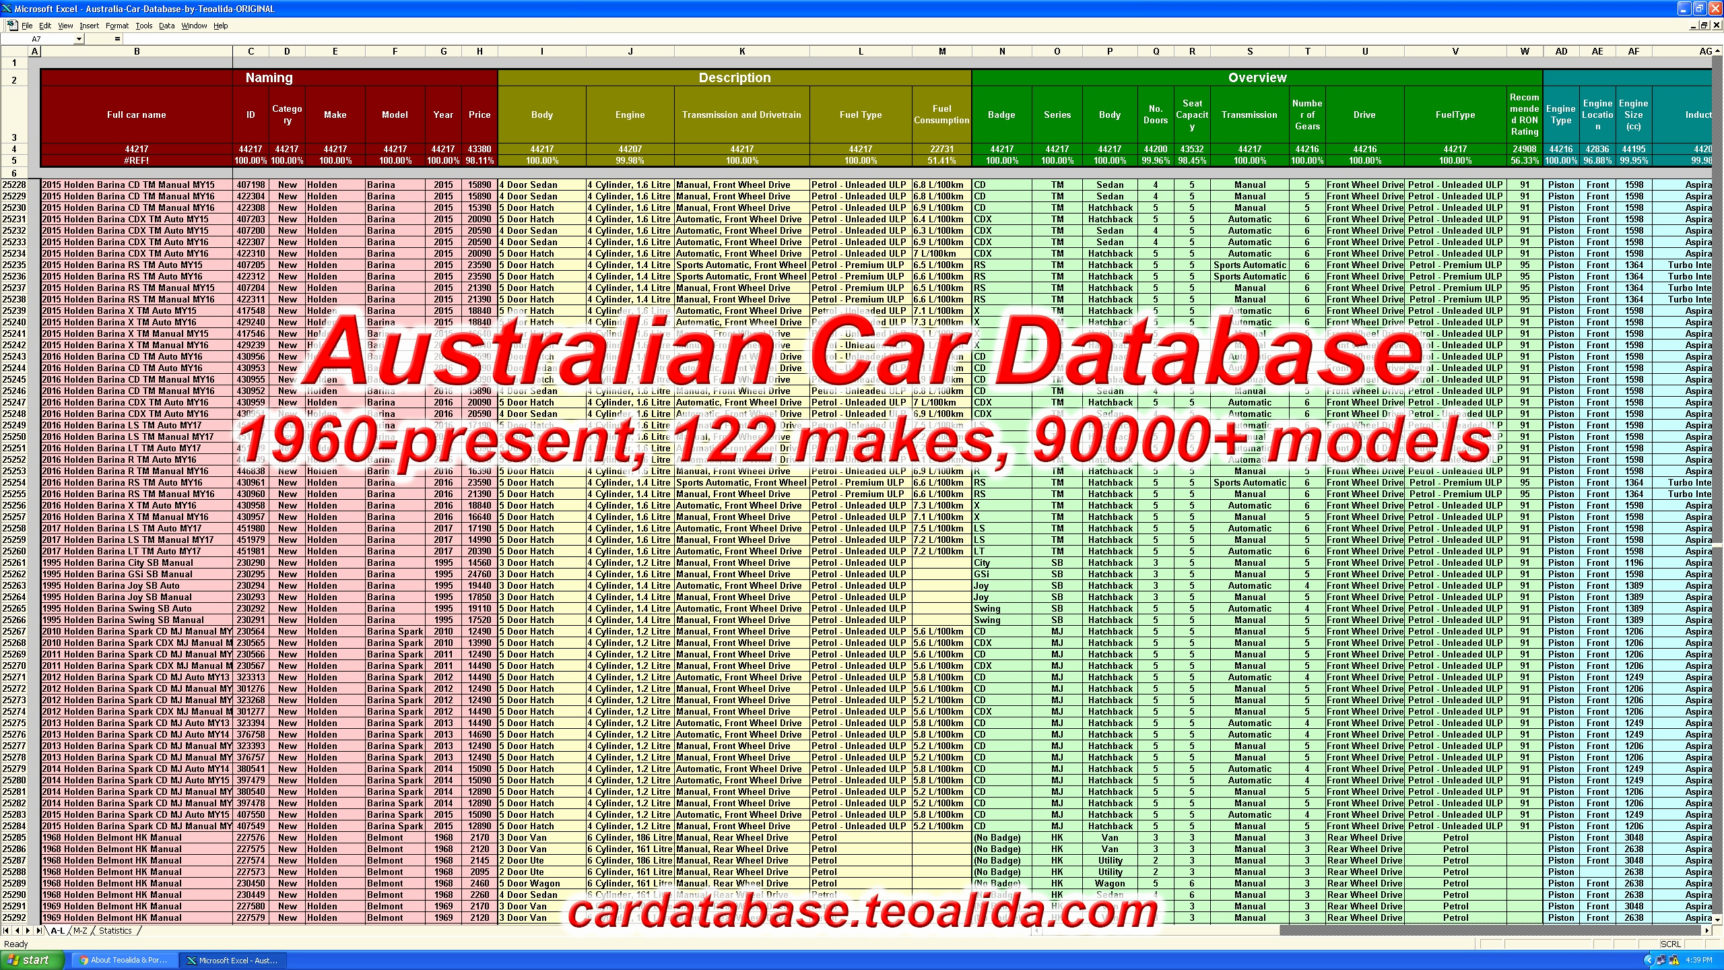 Car Shopping Spreadsheet Pertaining To Car Shopping Comparison Spreadsheet As How To Make An  Pywrapper